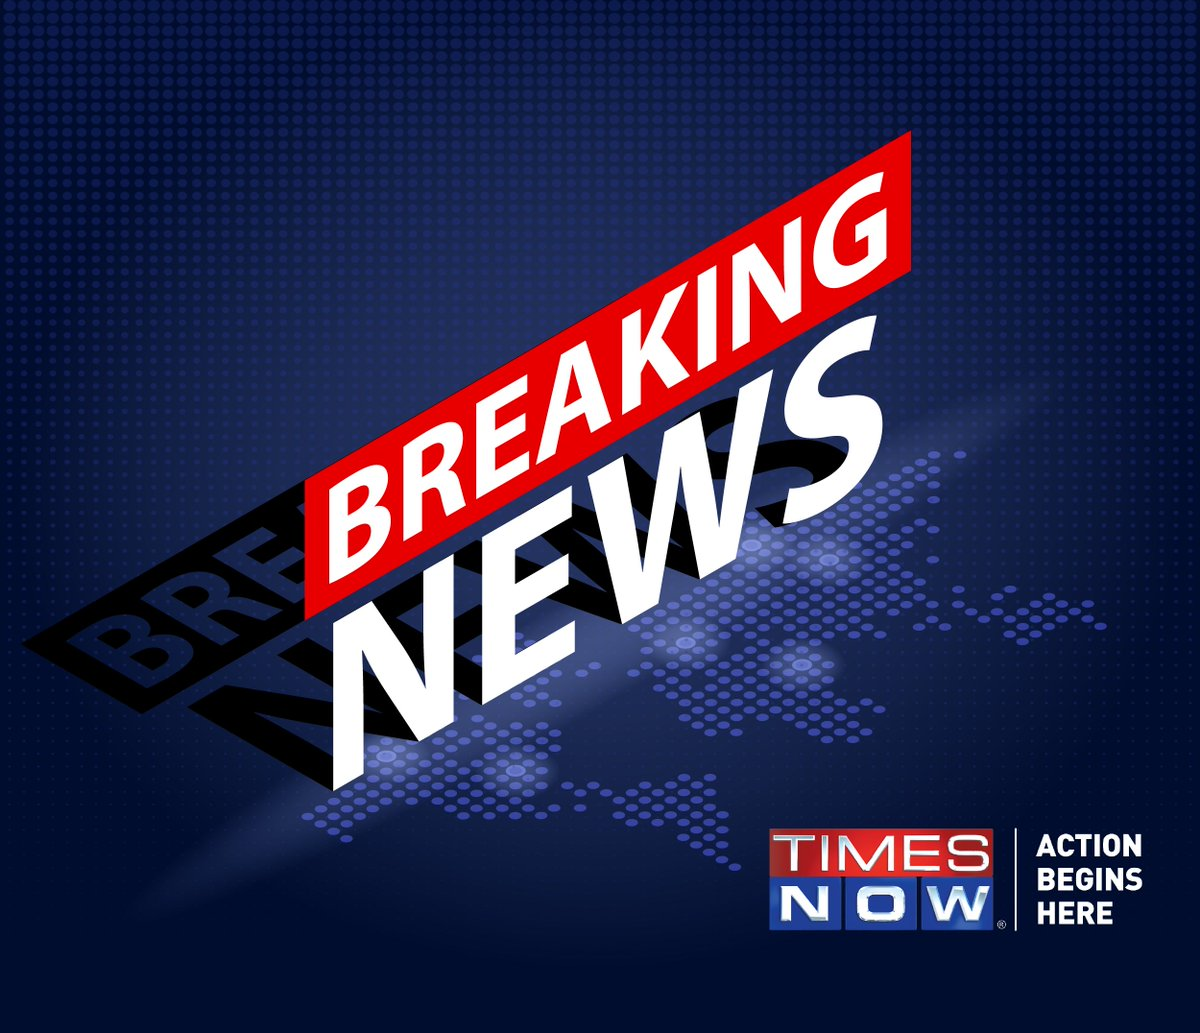 #BREAKING Massive TIMES NOW impact: NHRC panel grills Tuticorin sniper, panel quizzes T.N cop Raja, TIMES NOW 1st spoke to cop, cop had exposed 'higher ups' #KillersOfTuticorin